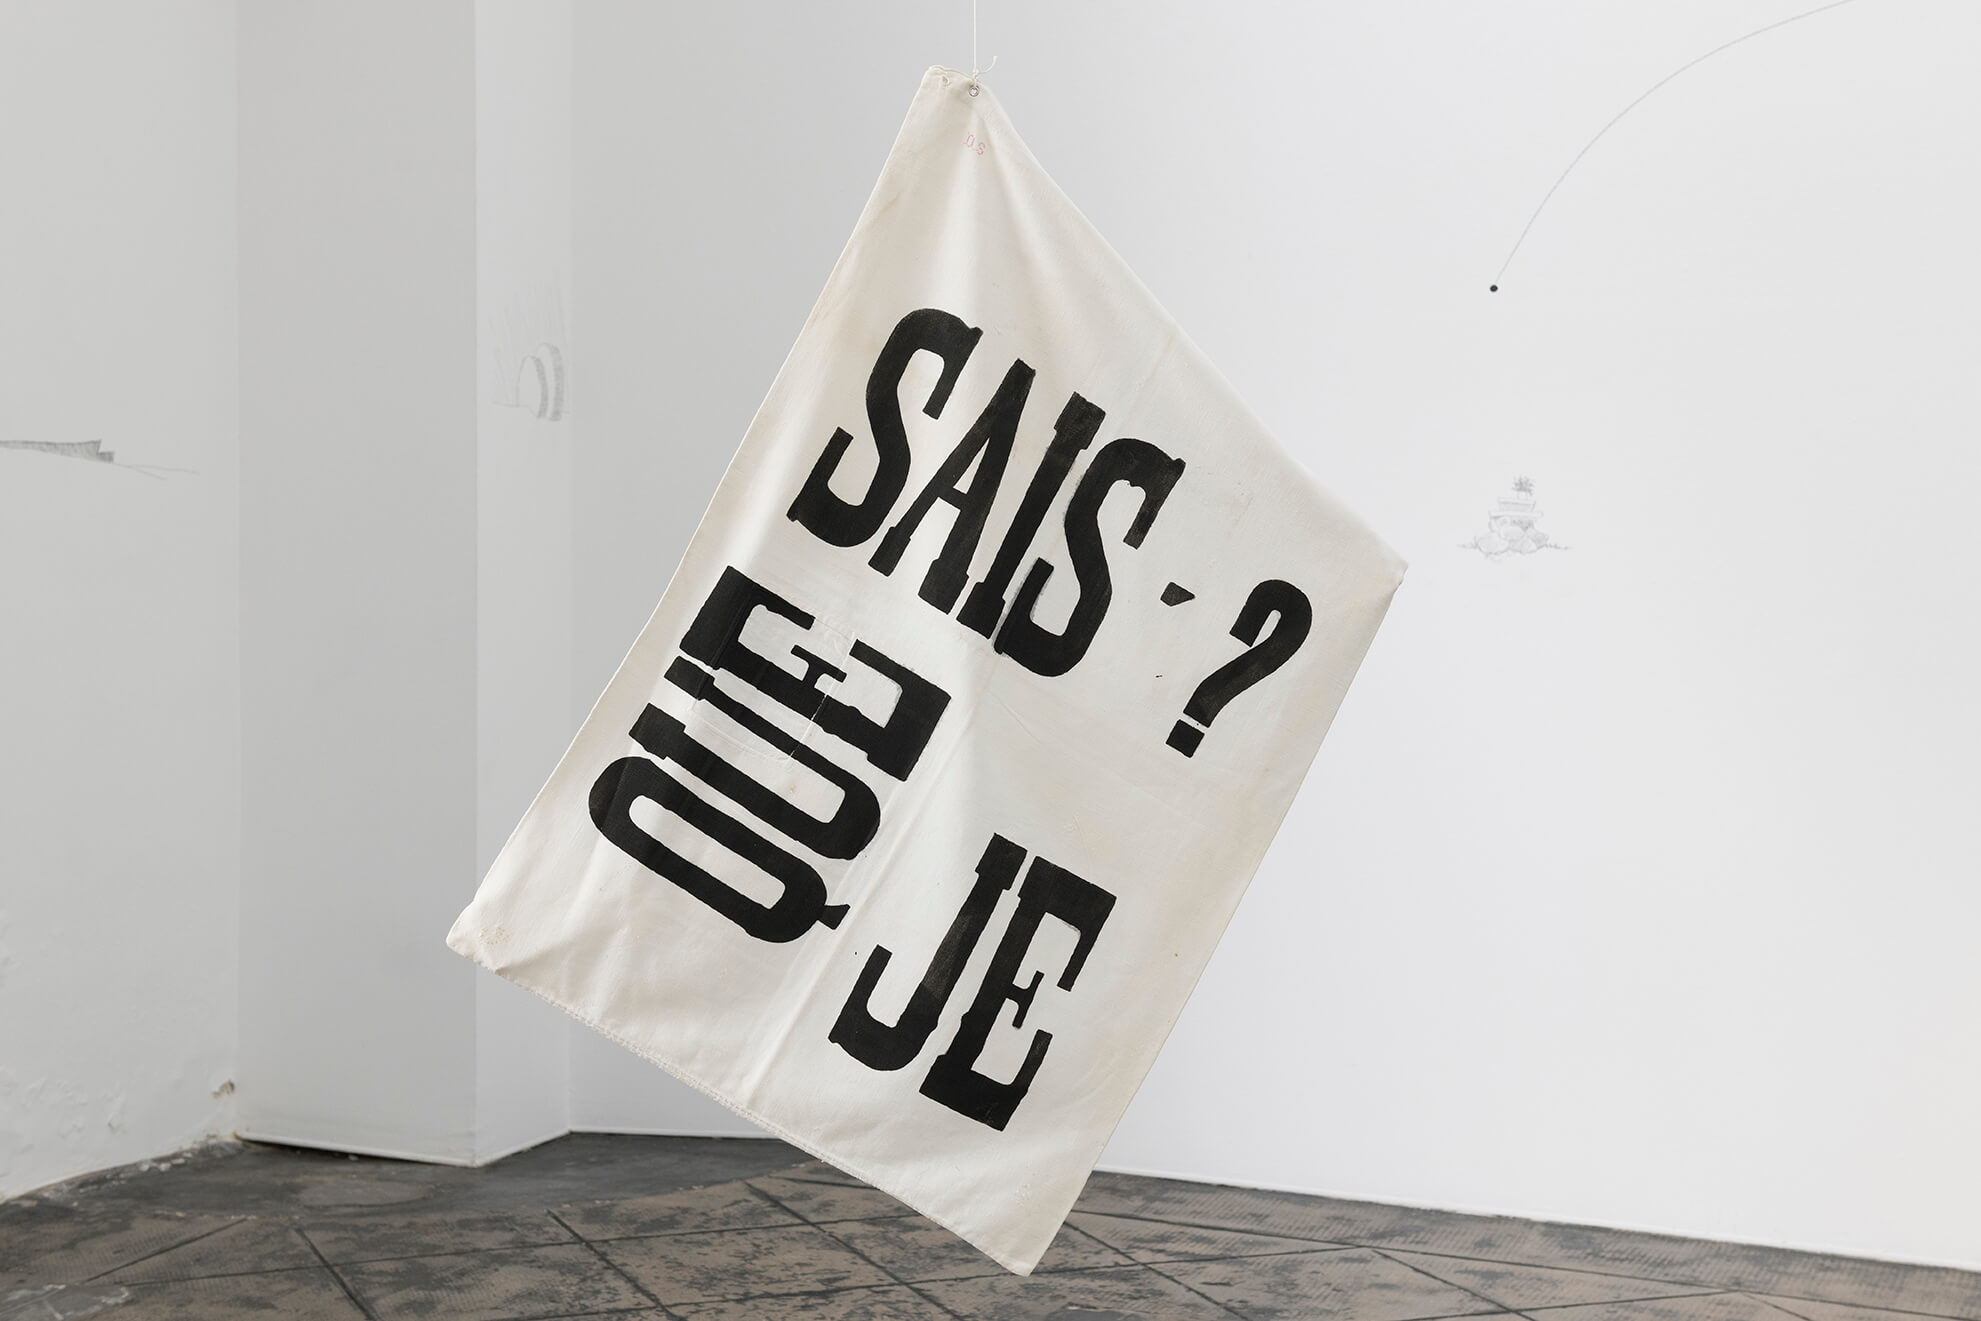 Que Sais-Je?, 2011 | Untitled | ProjecteSD